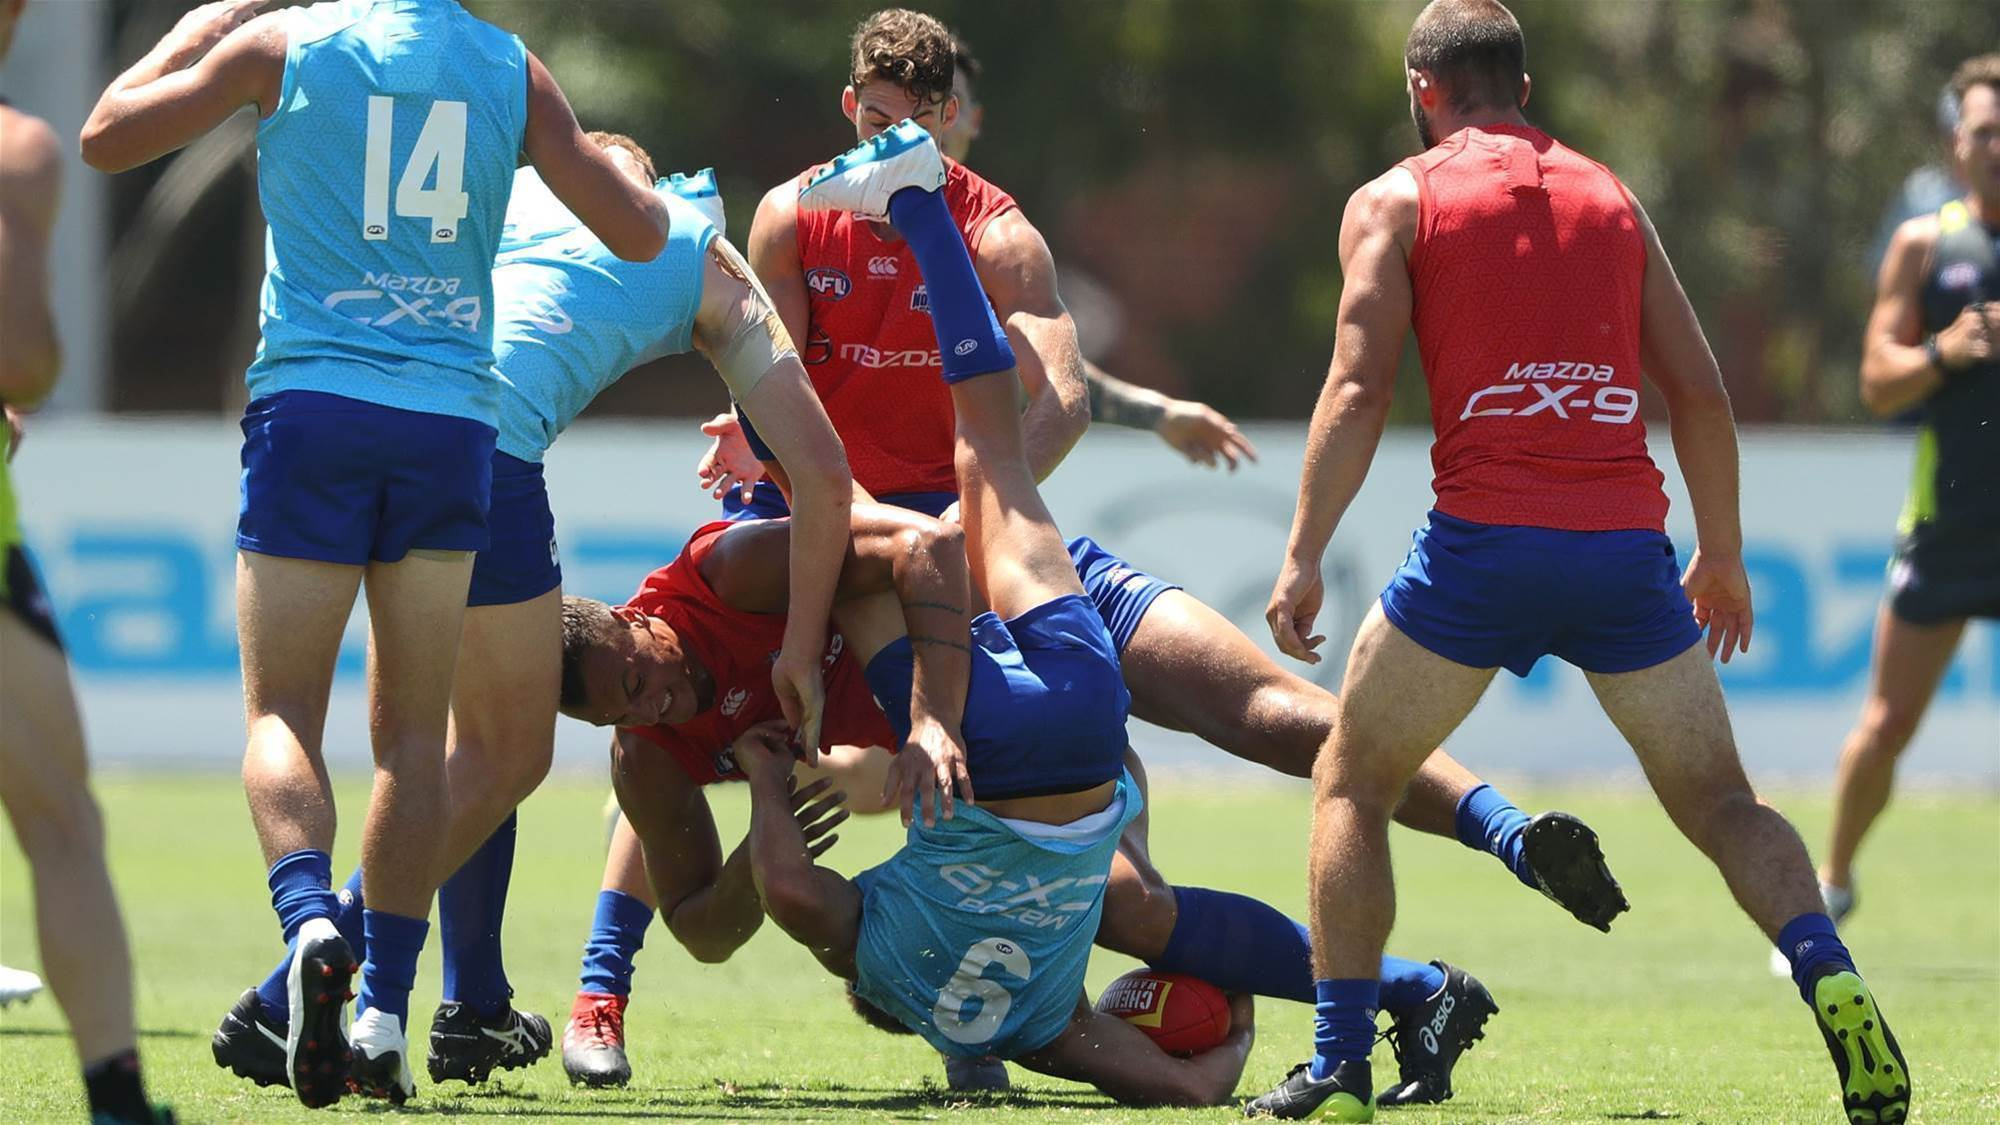 North Melbourne teammates come to blows